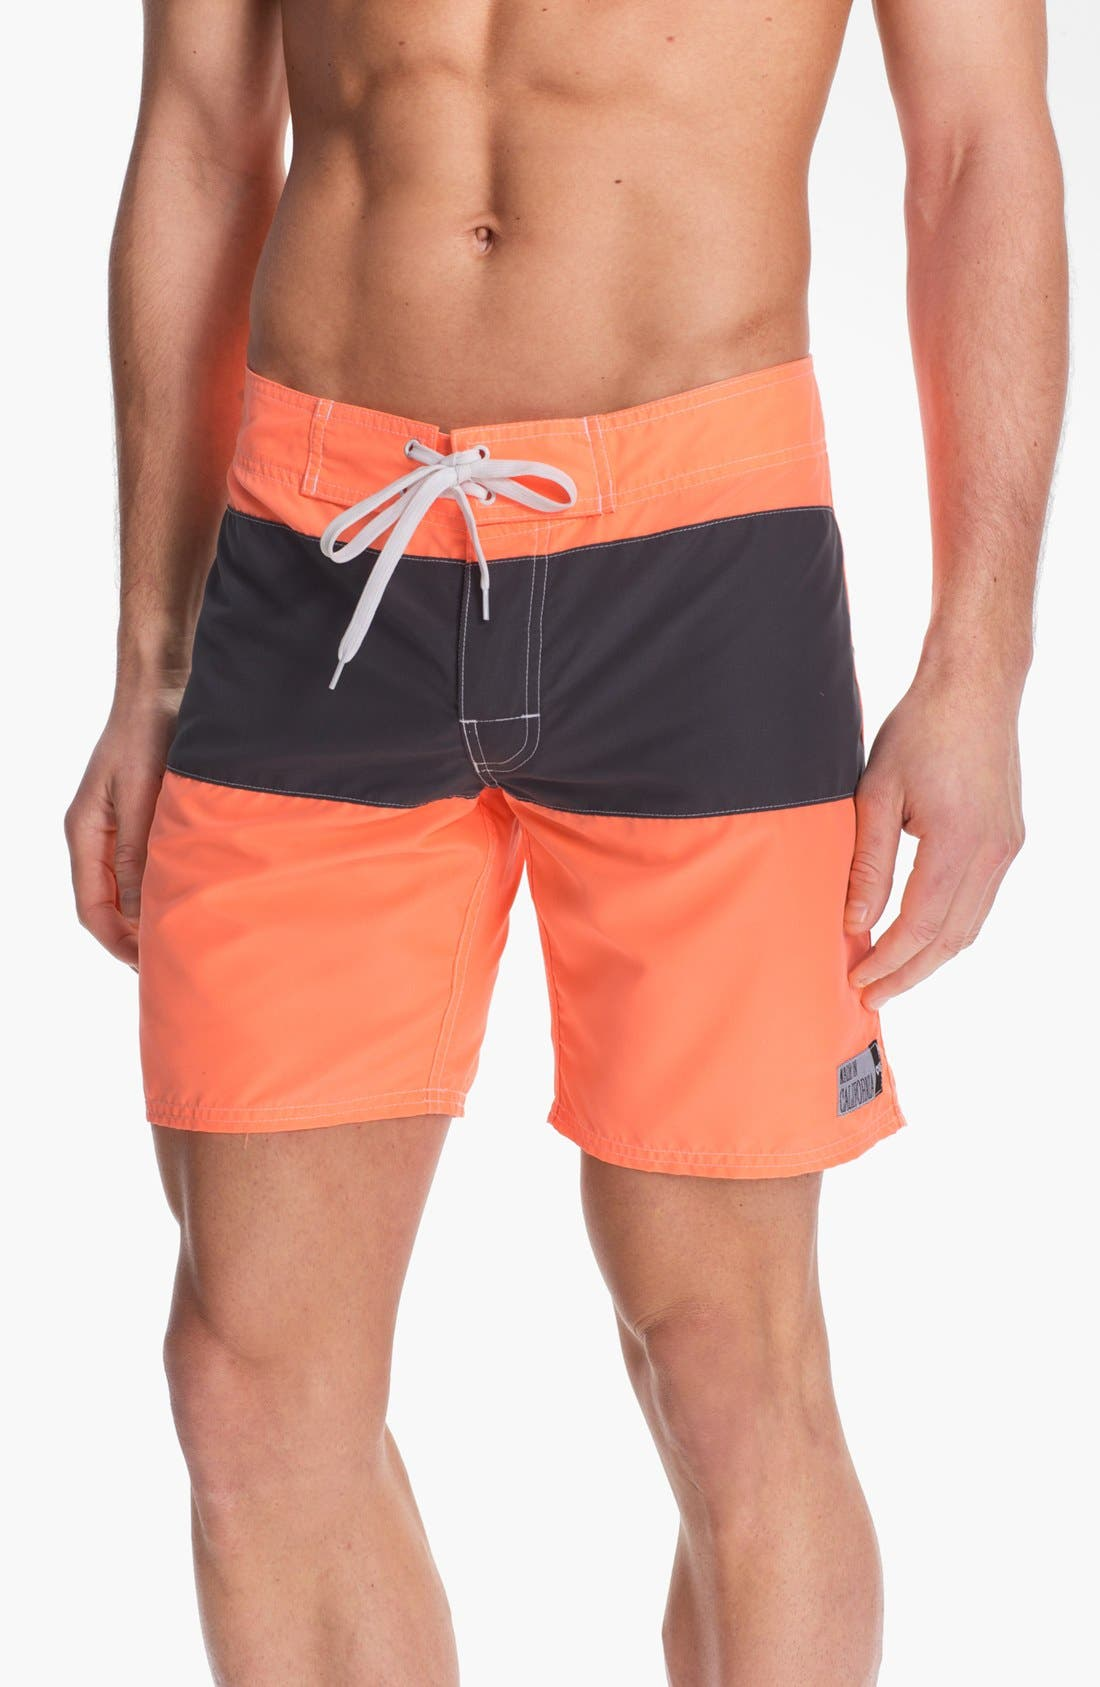 Alternate Image 1 Selected - ambsn 'Pause' Board Shorts